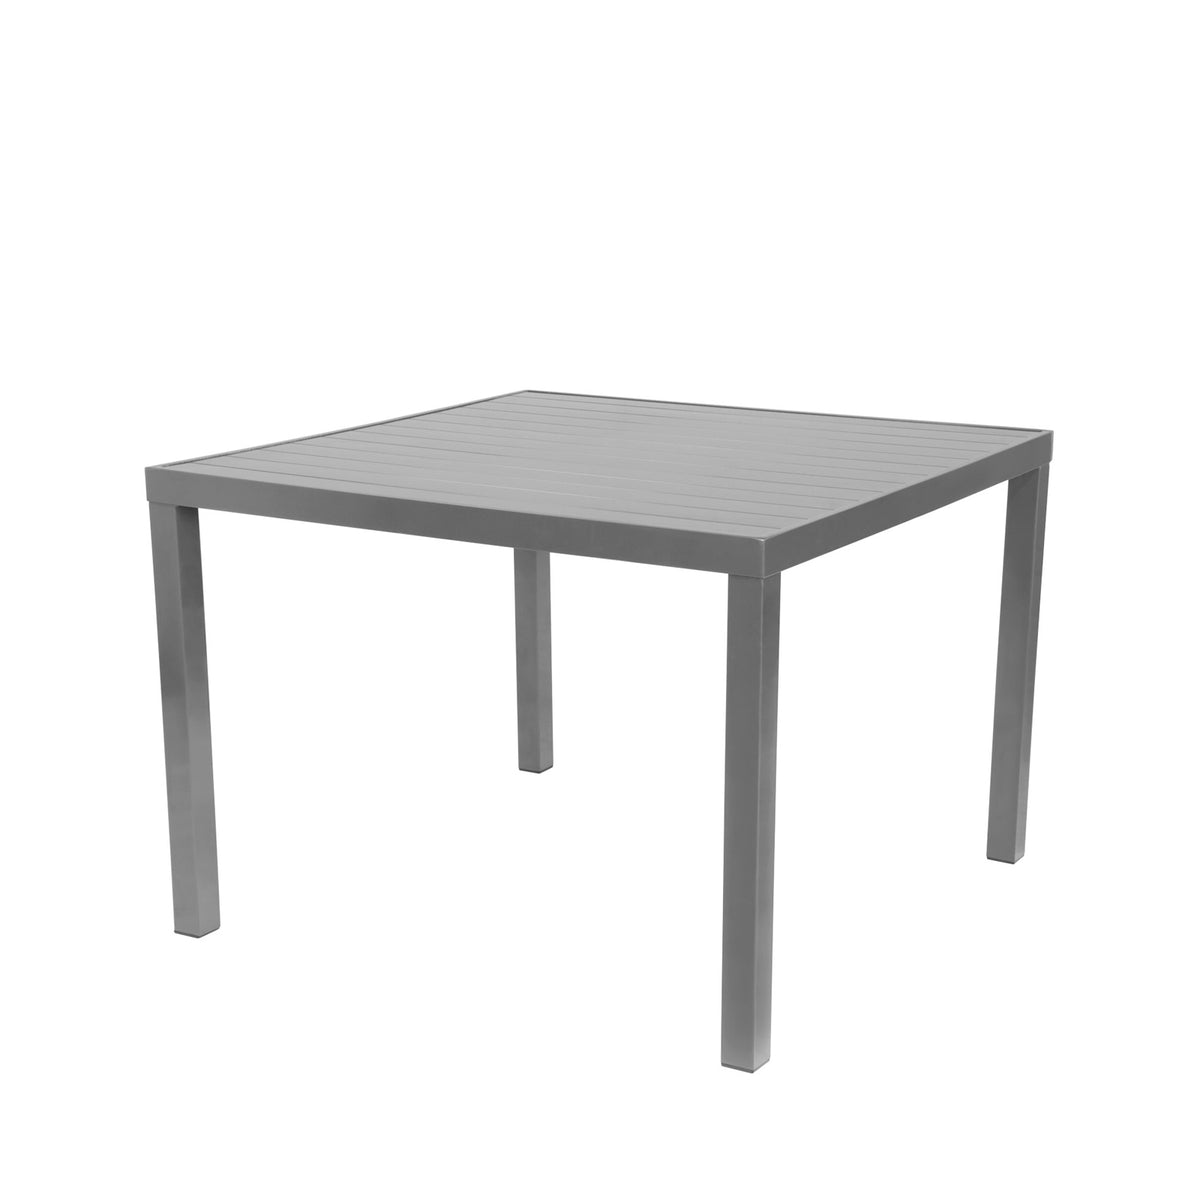 "Source Furniture Fusion Square 42"" x 42"" Dining Table Top"